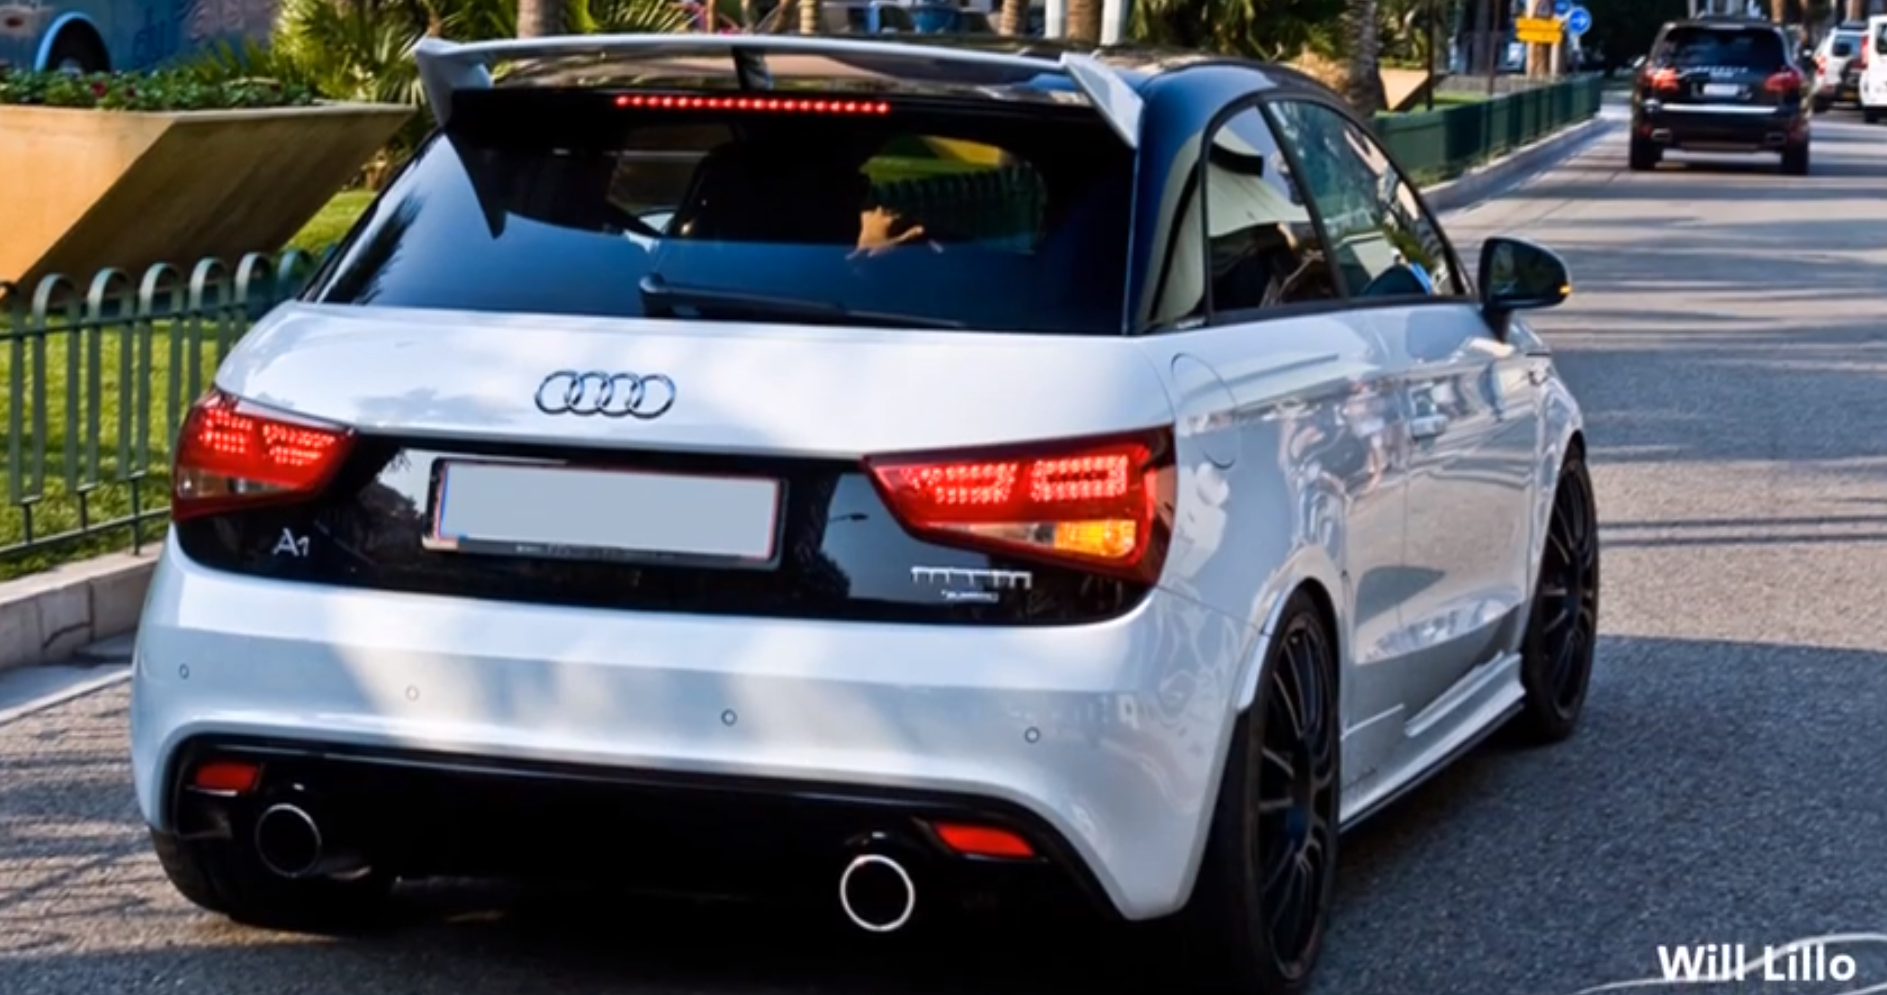 Audi A1 Quattro Mtm Is What Happens When Engineers Go